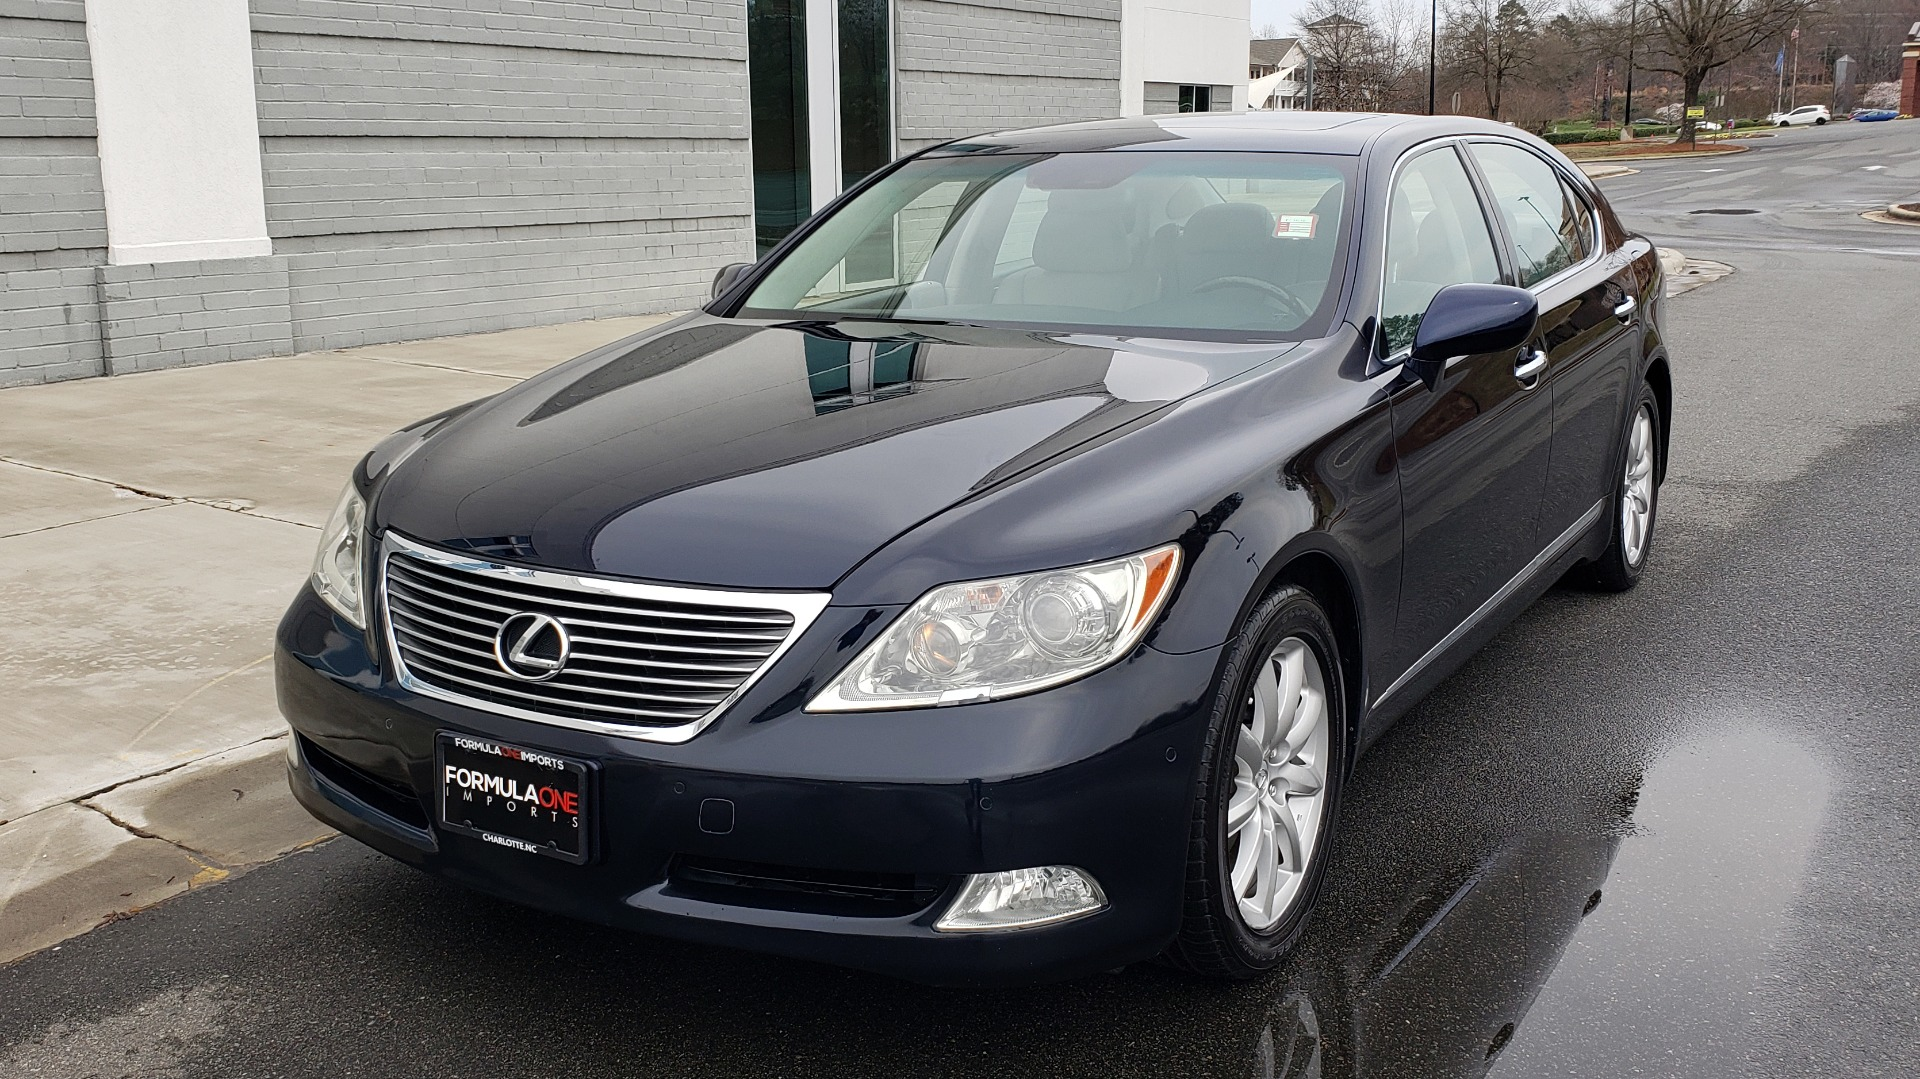 Used 2008 Lexus LS 460 LWB LUXURY SEDAN / MARK LEVINSON / INT PARK ASST / REARVIEW for sale Sold at Formula Imports in Charlotte NC 28227 2